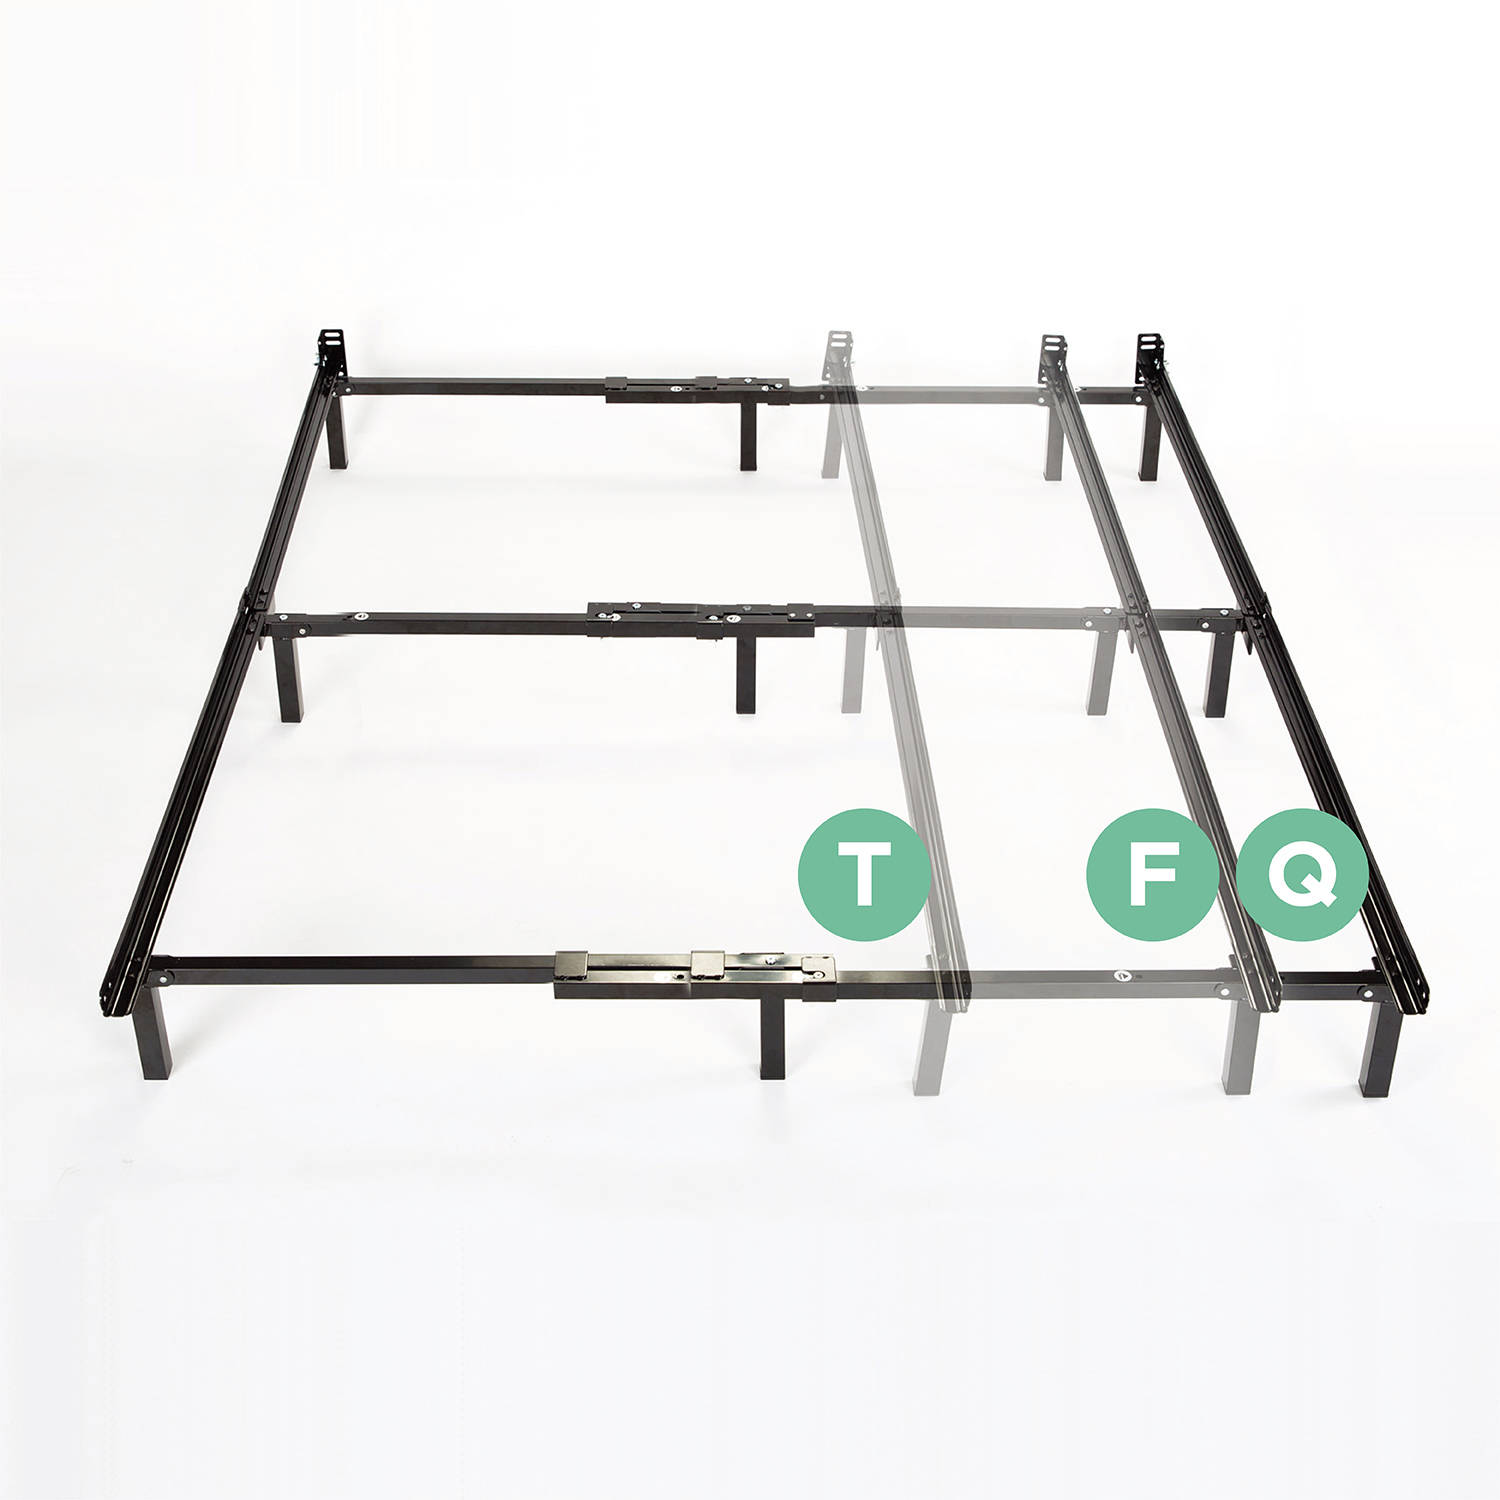 spa sensations 7 low profile adjustable steel bed frame easy no tools assembly multiple sizes walmartcom - Walmart King Bed Frame